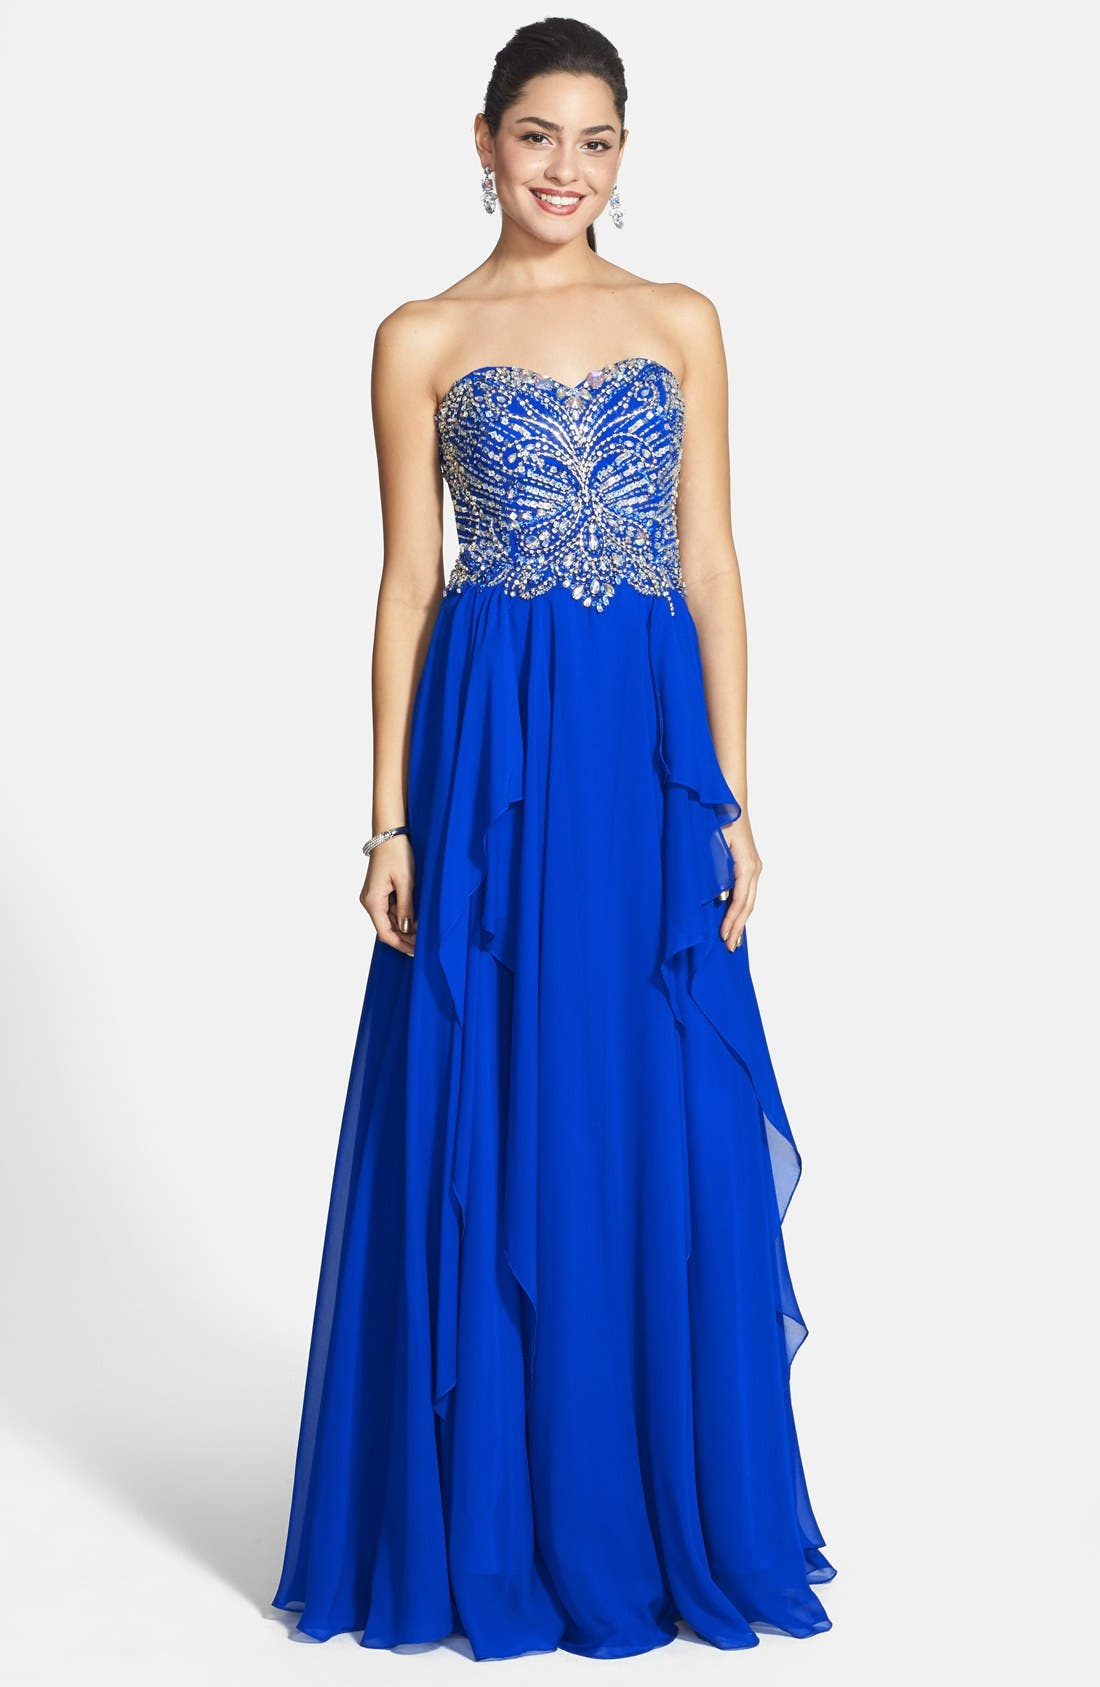 Main Image - Alyce Paris Embellished Layered Chiffon Strapless Gown